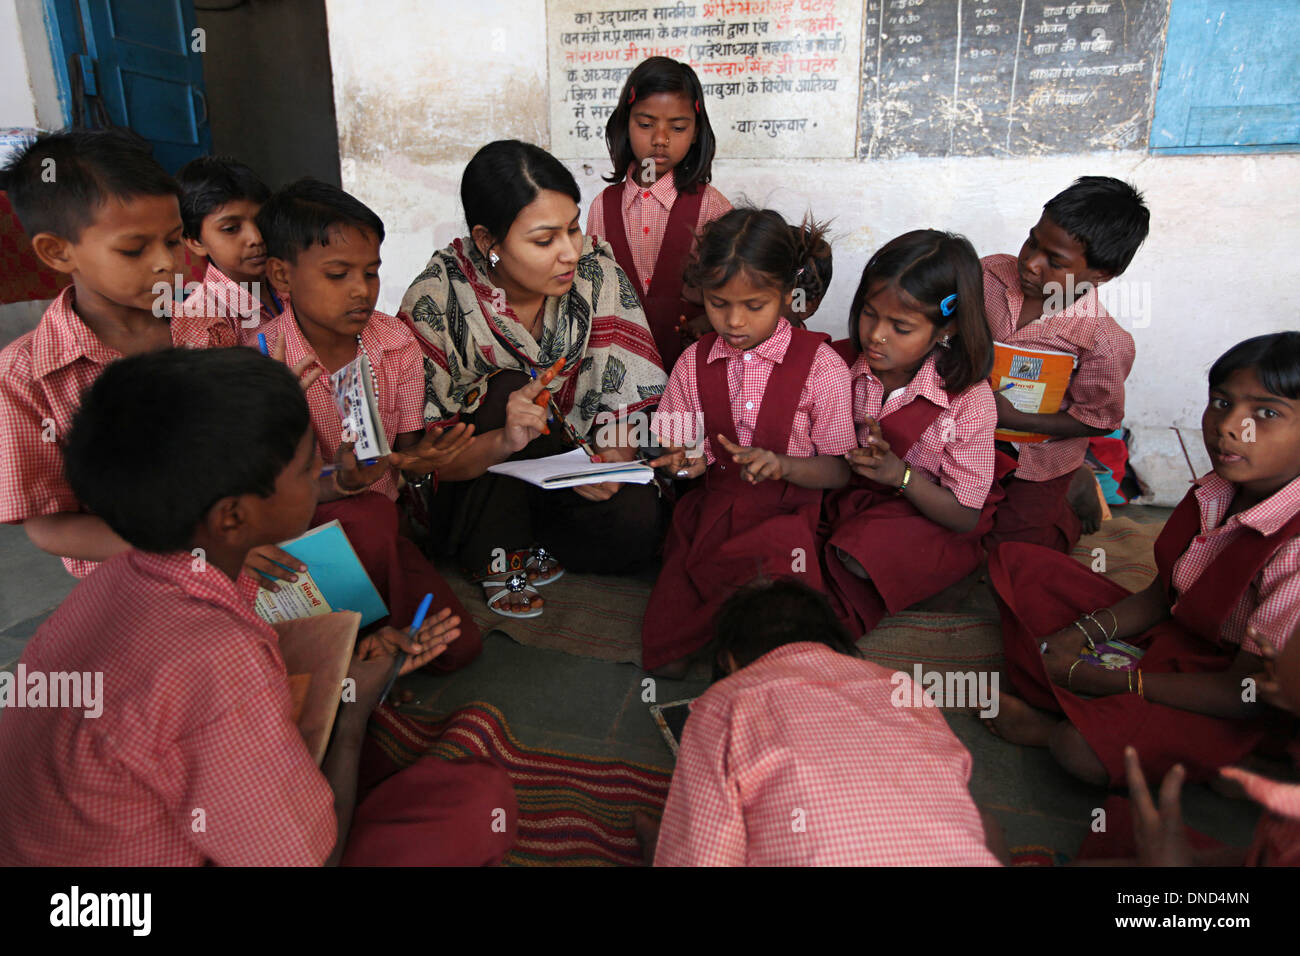 A view of a classroom with students and teacher. Ashram school at Rangapura, Zabua district, Madhya Pradesh - Stock Image